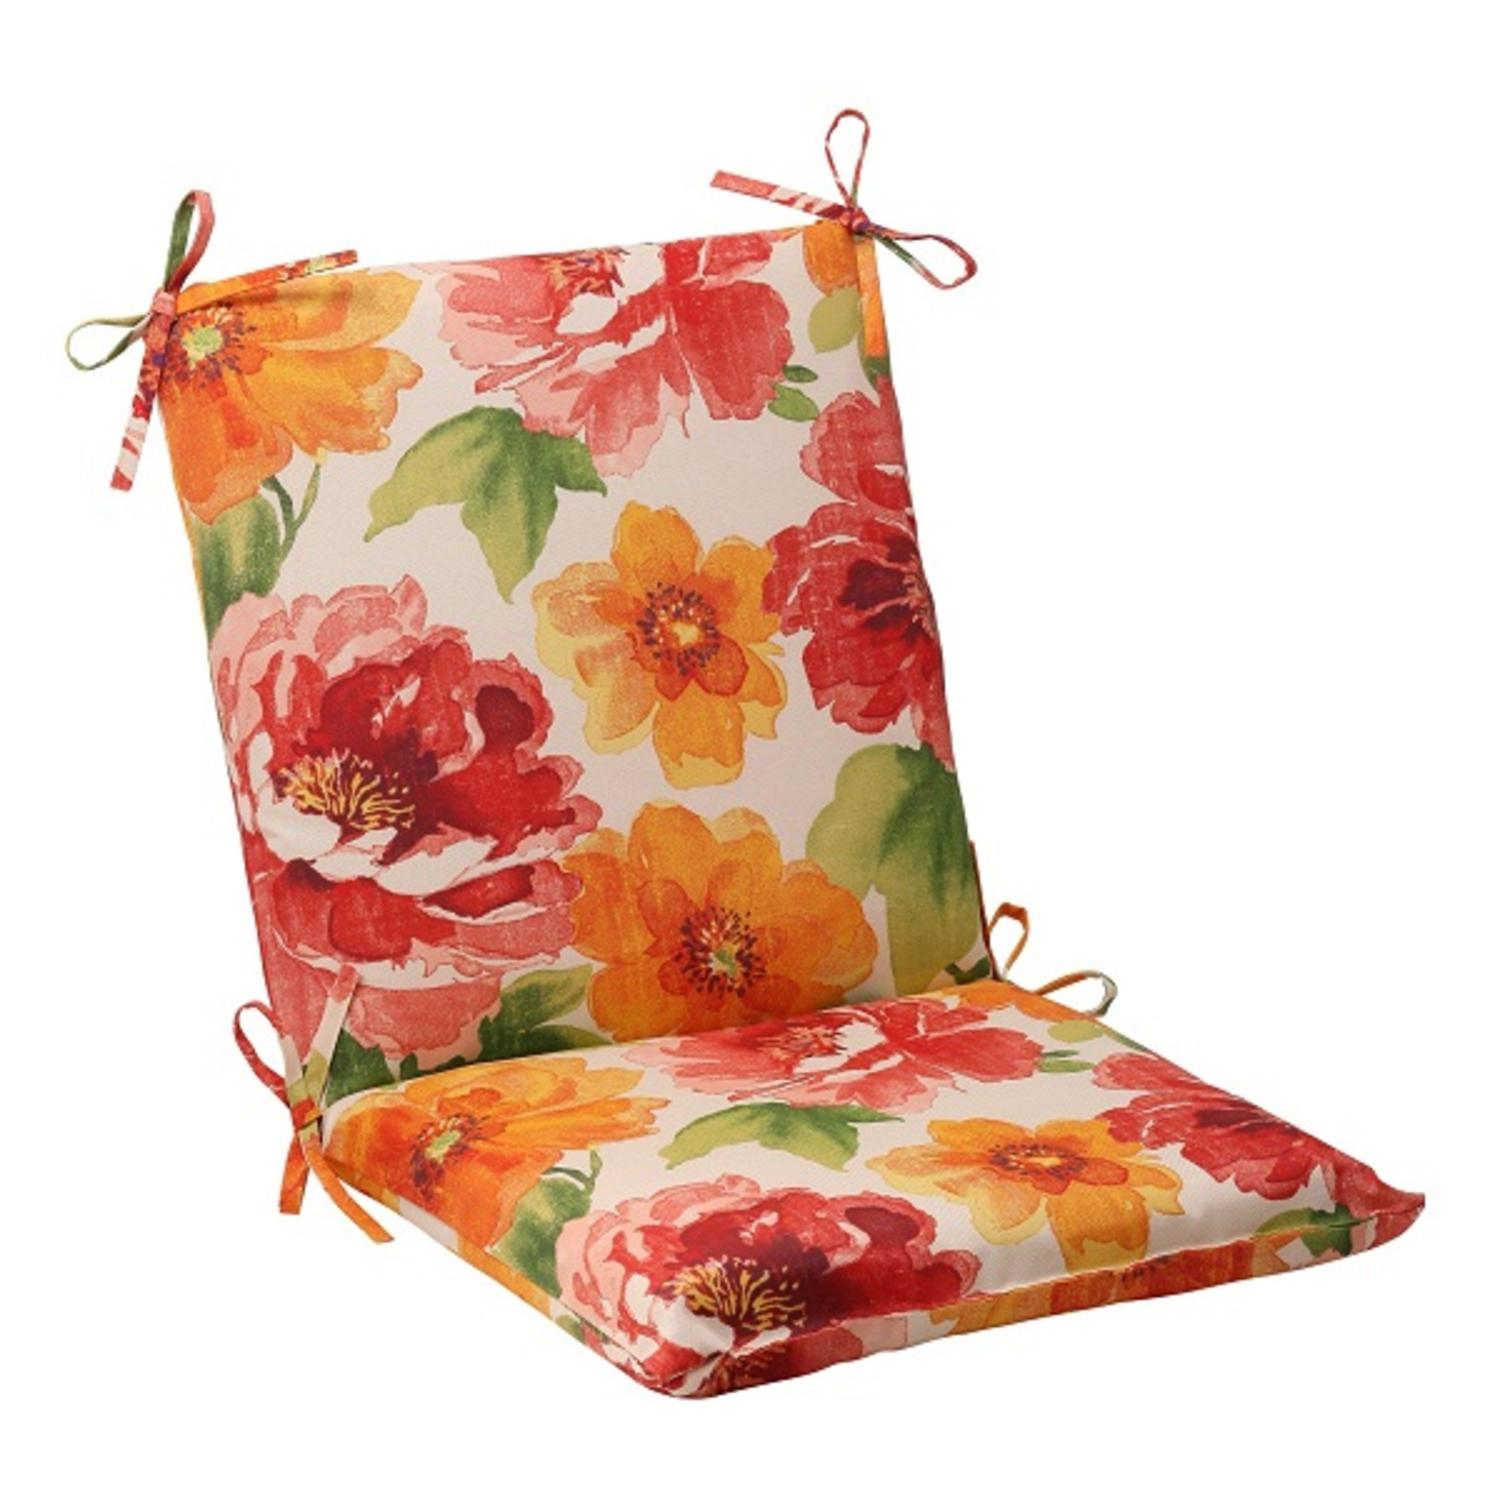 "36.5"" White Floral Splash Outdoor Patio Squared Chair Cushion with Ties"